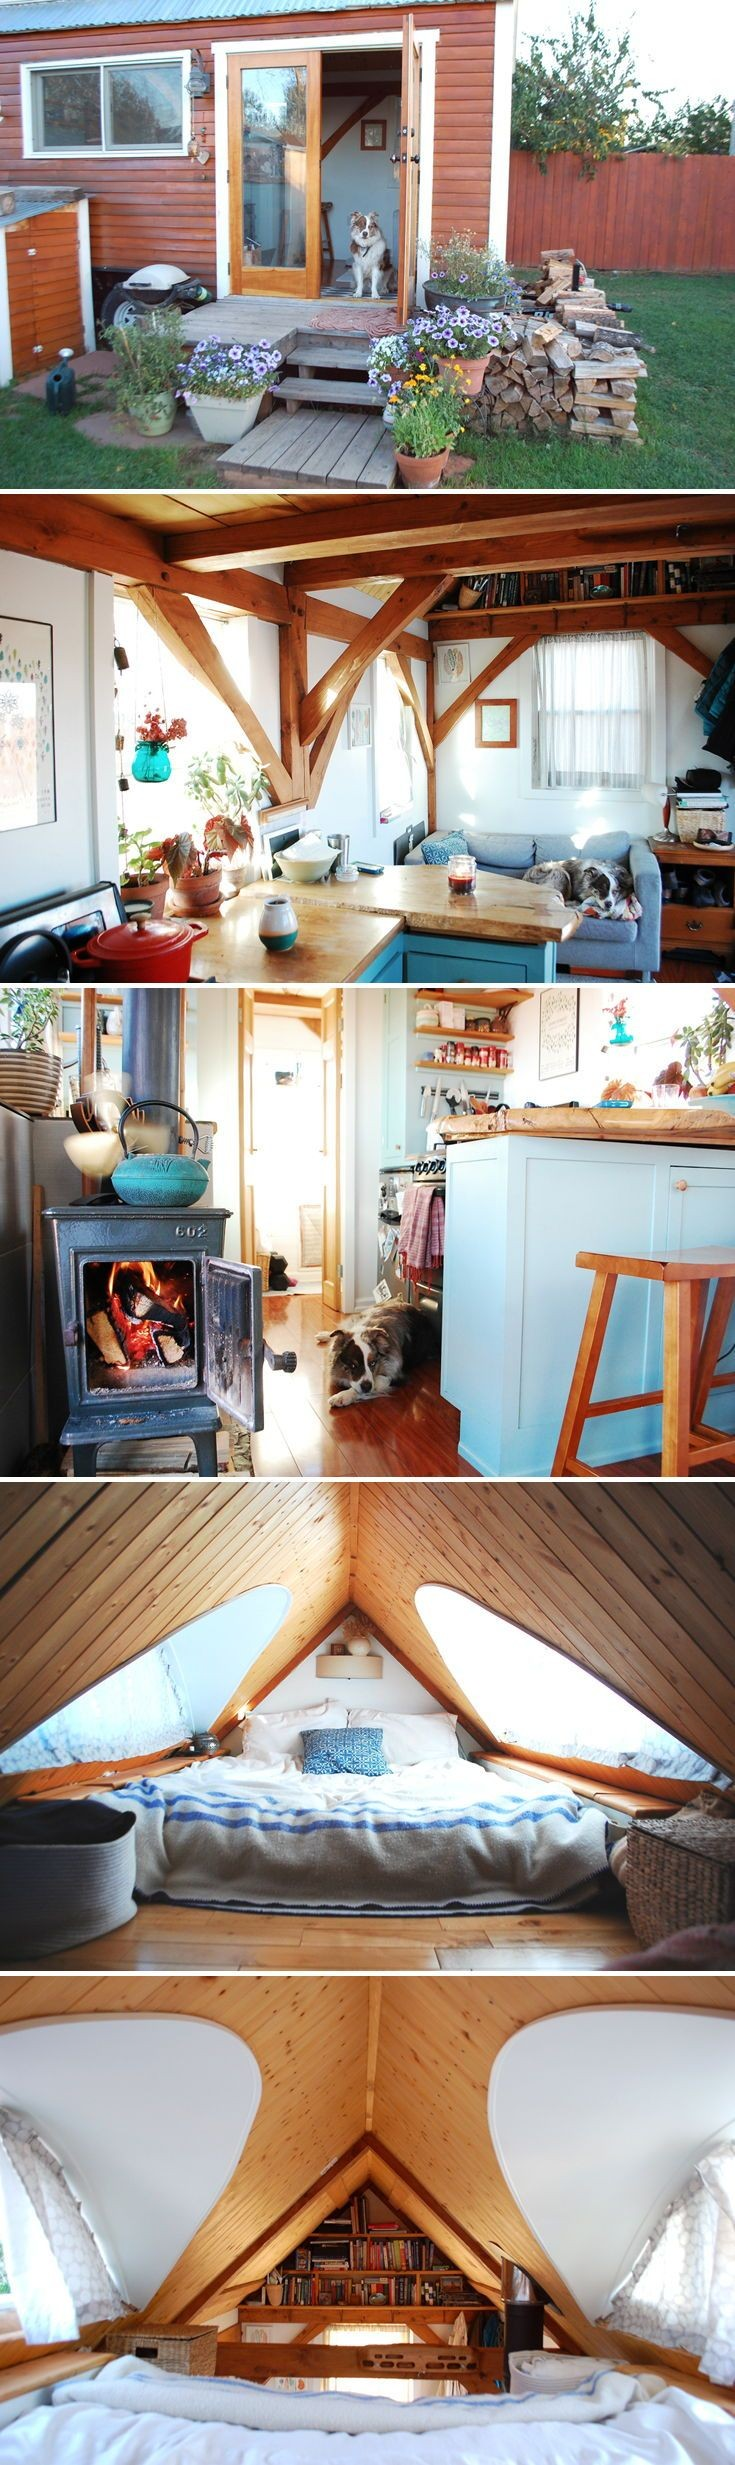 The Tiny Timber House is an 18 foot tiny home built on wheels It